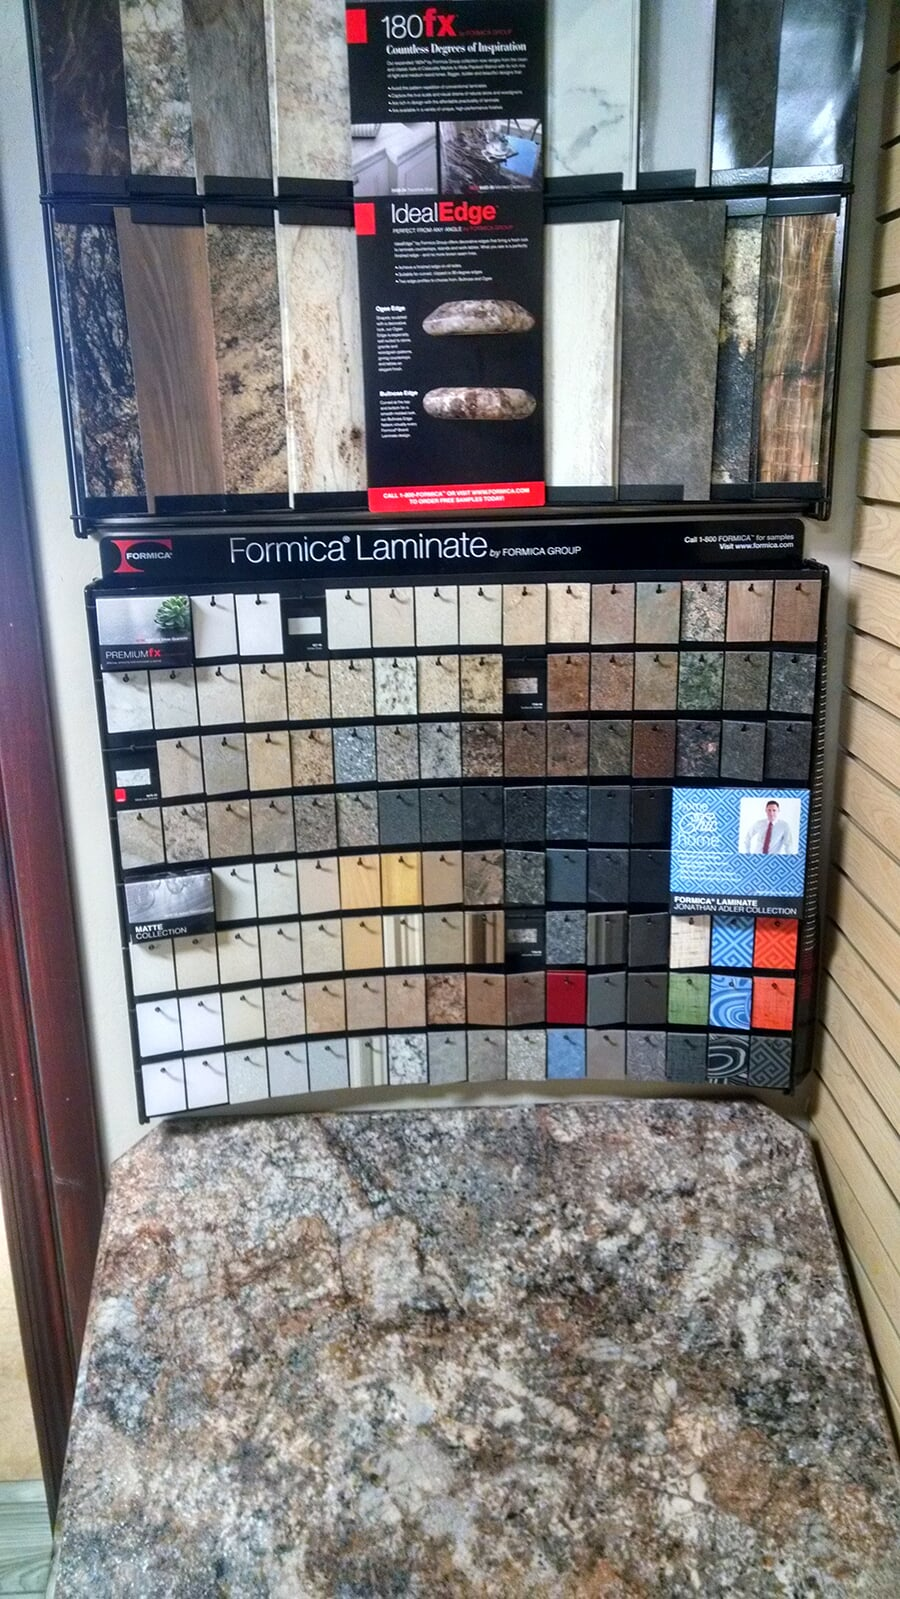 Formica Station available at All American Home Center in Chickasha, OK